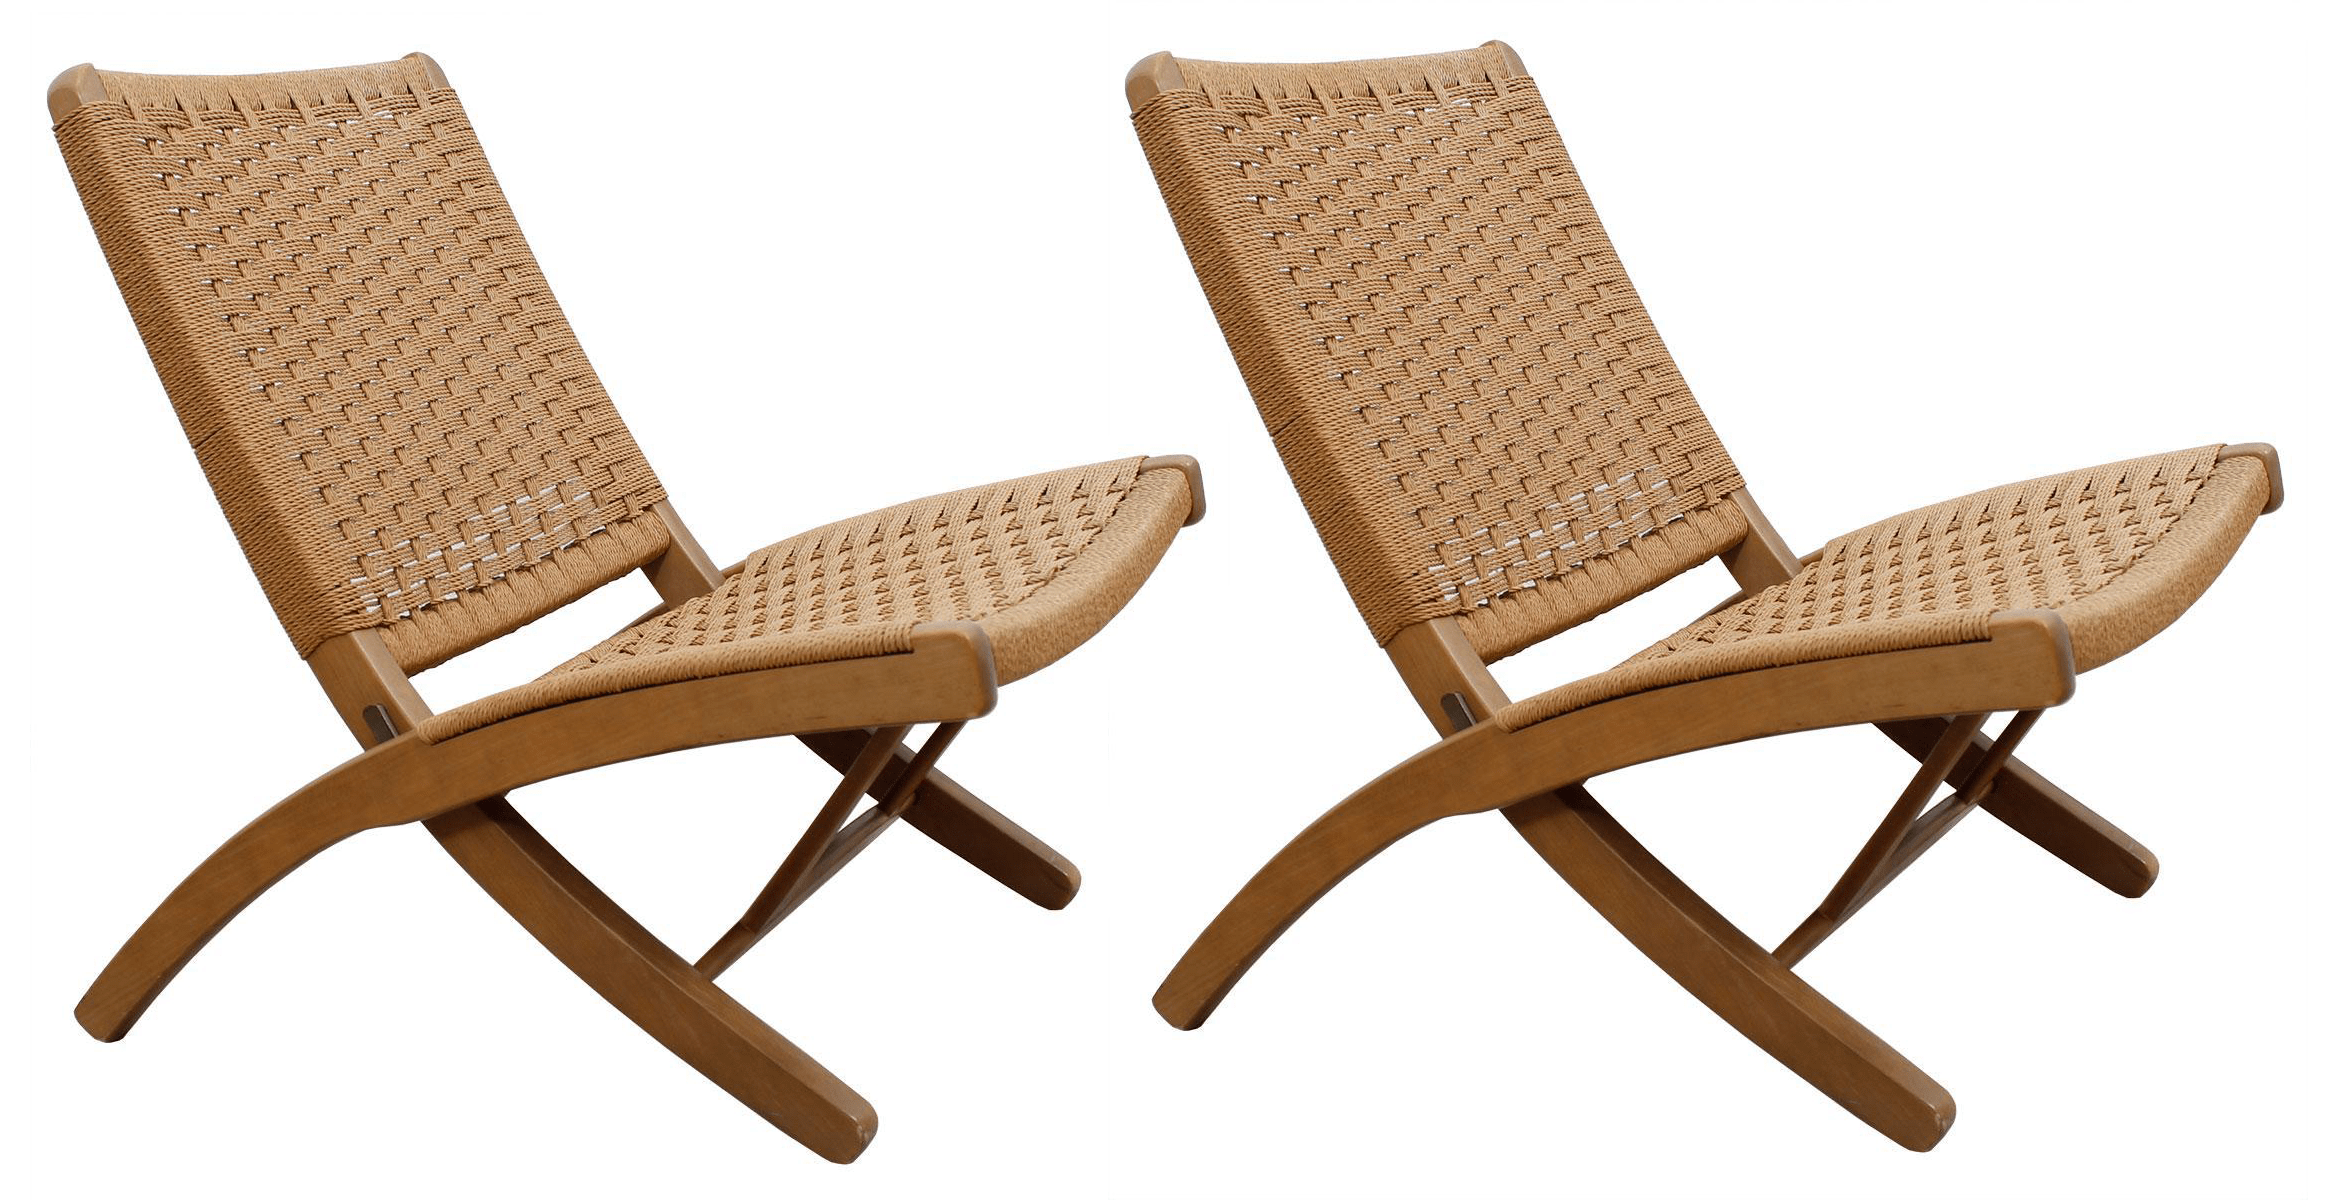 Hans Wegner Folding Chair Hans Wegner Style Danish Cord Folding Chairs S 2 Chairish